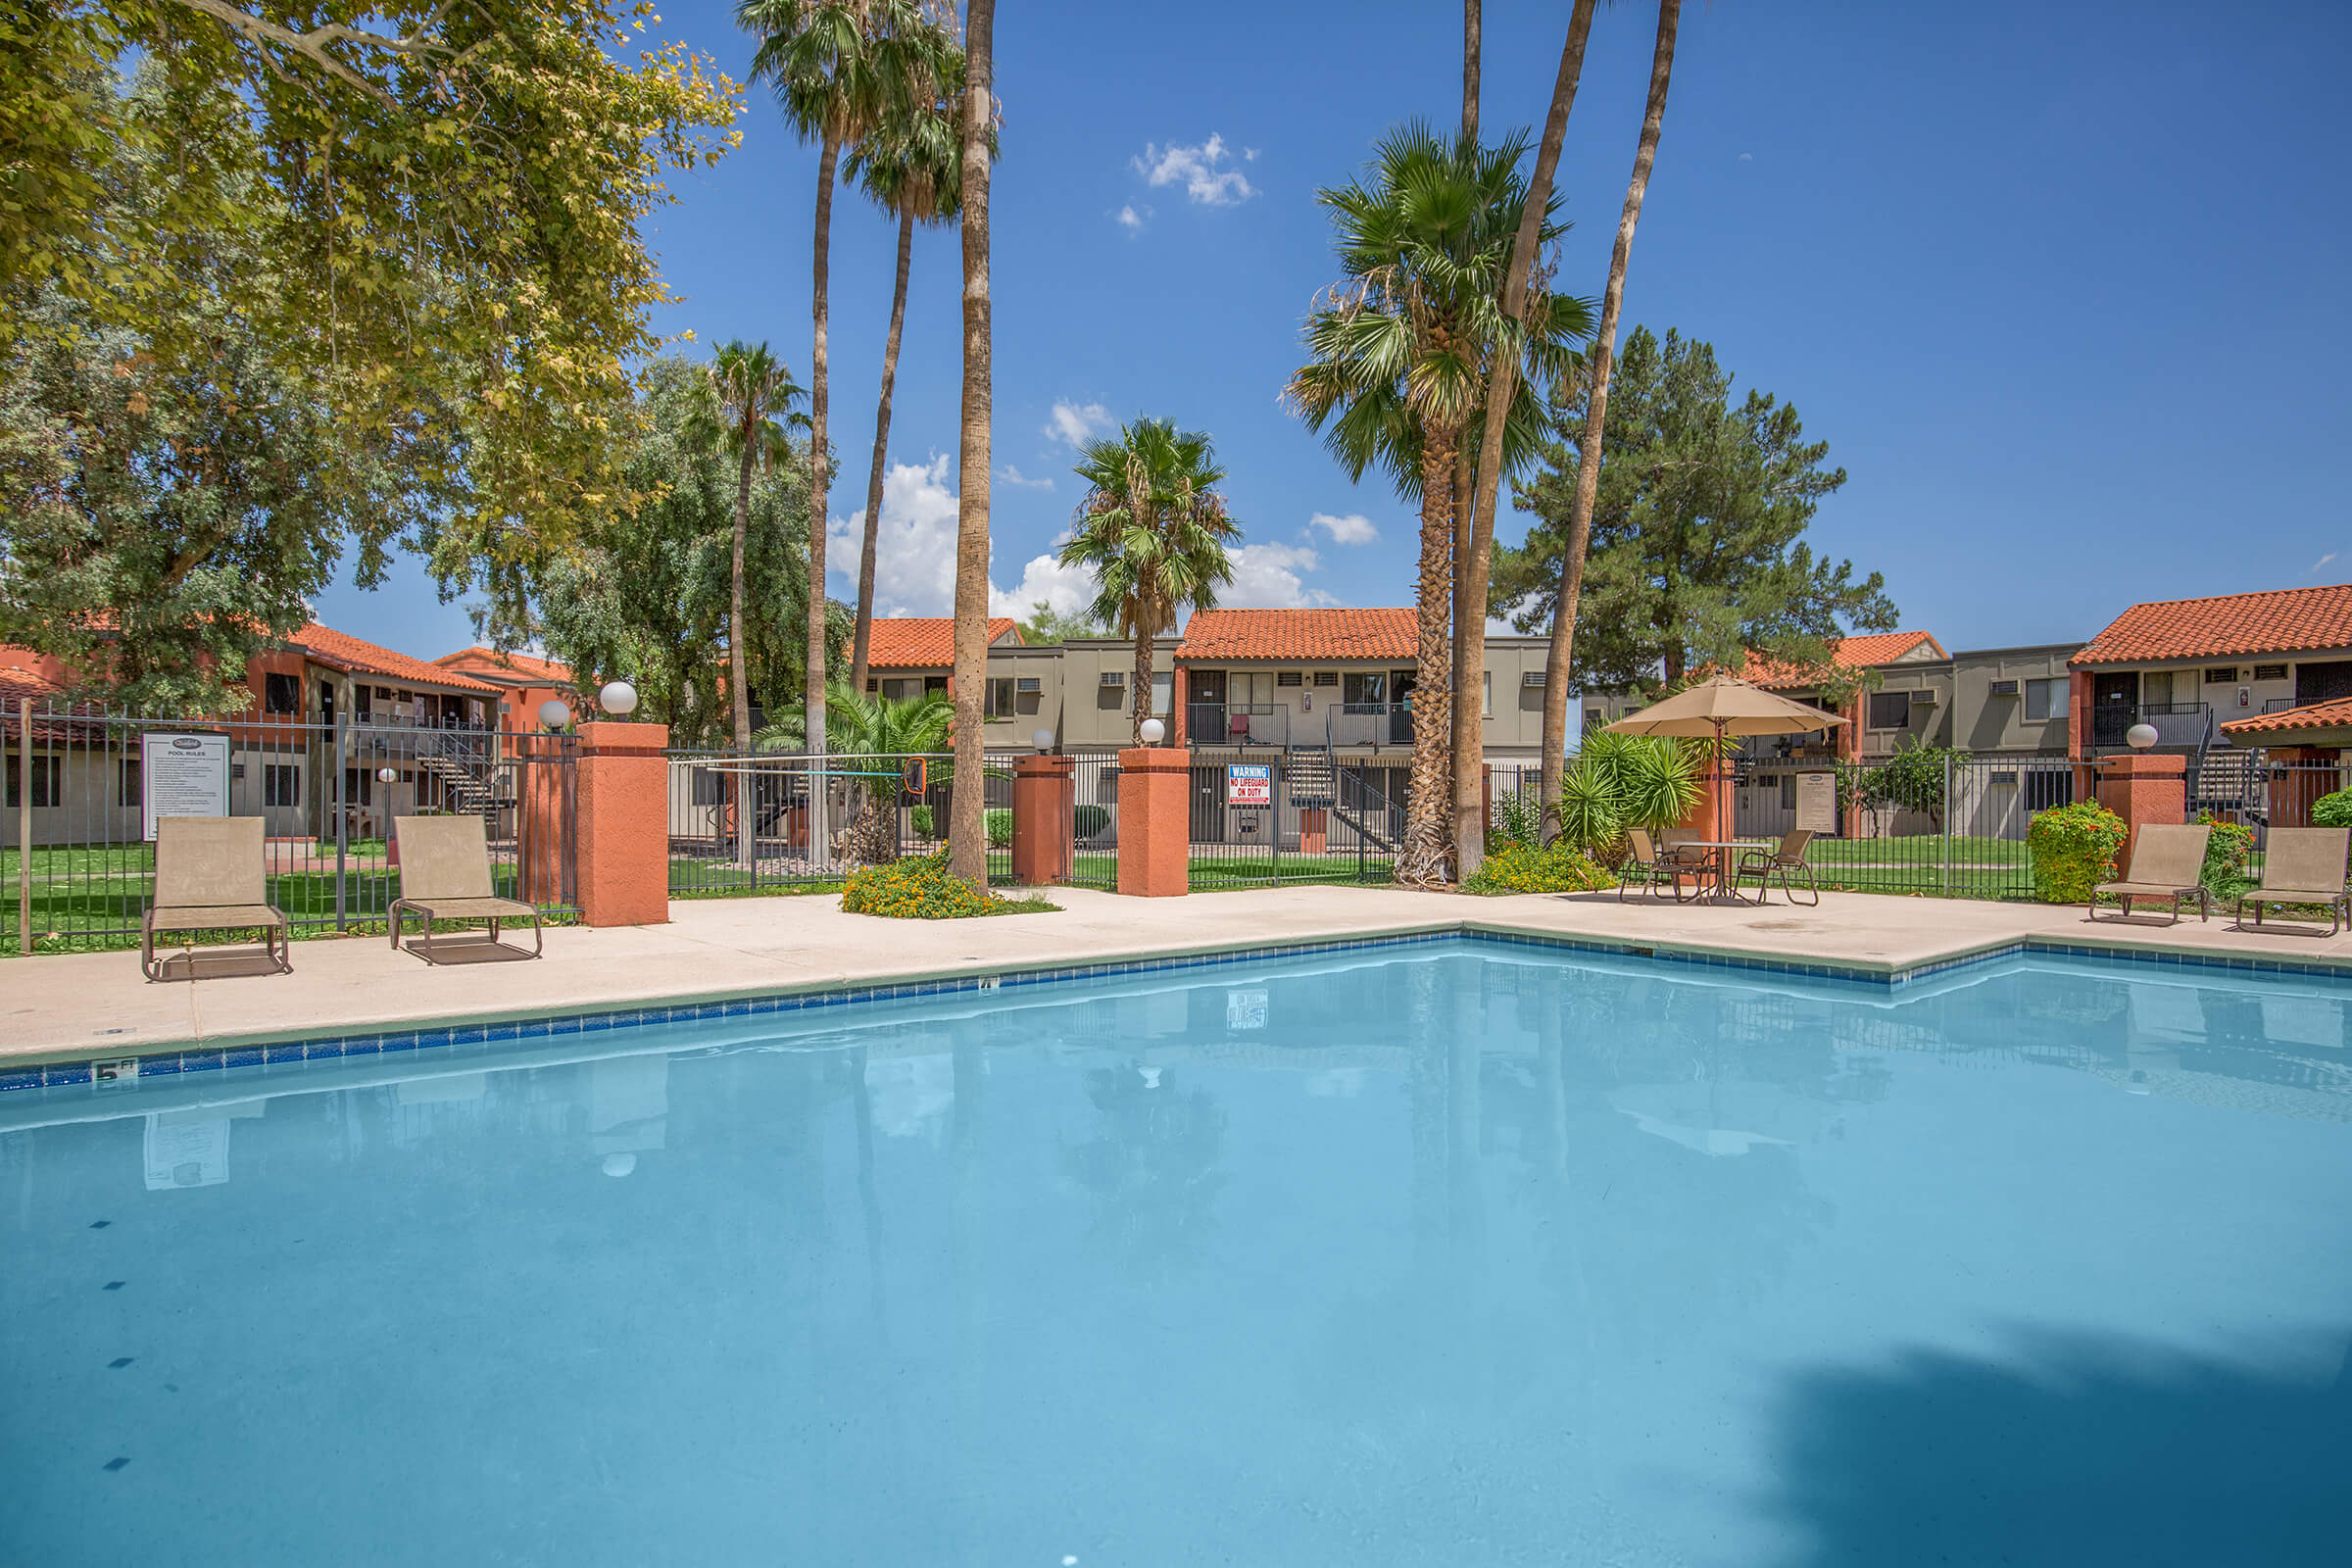 Picture of The Standard Raintree Apartments